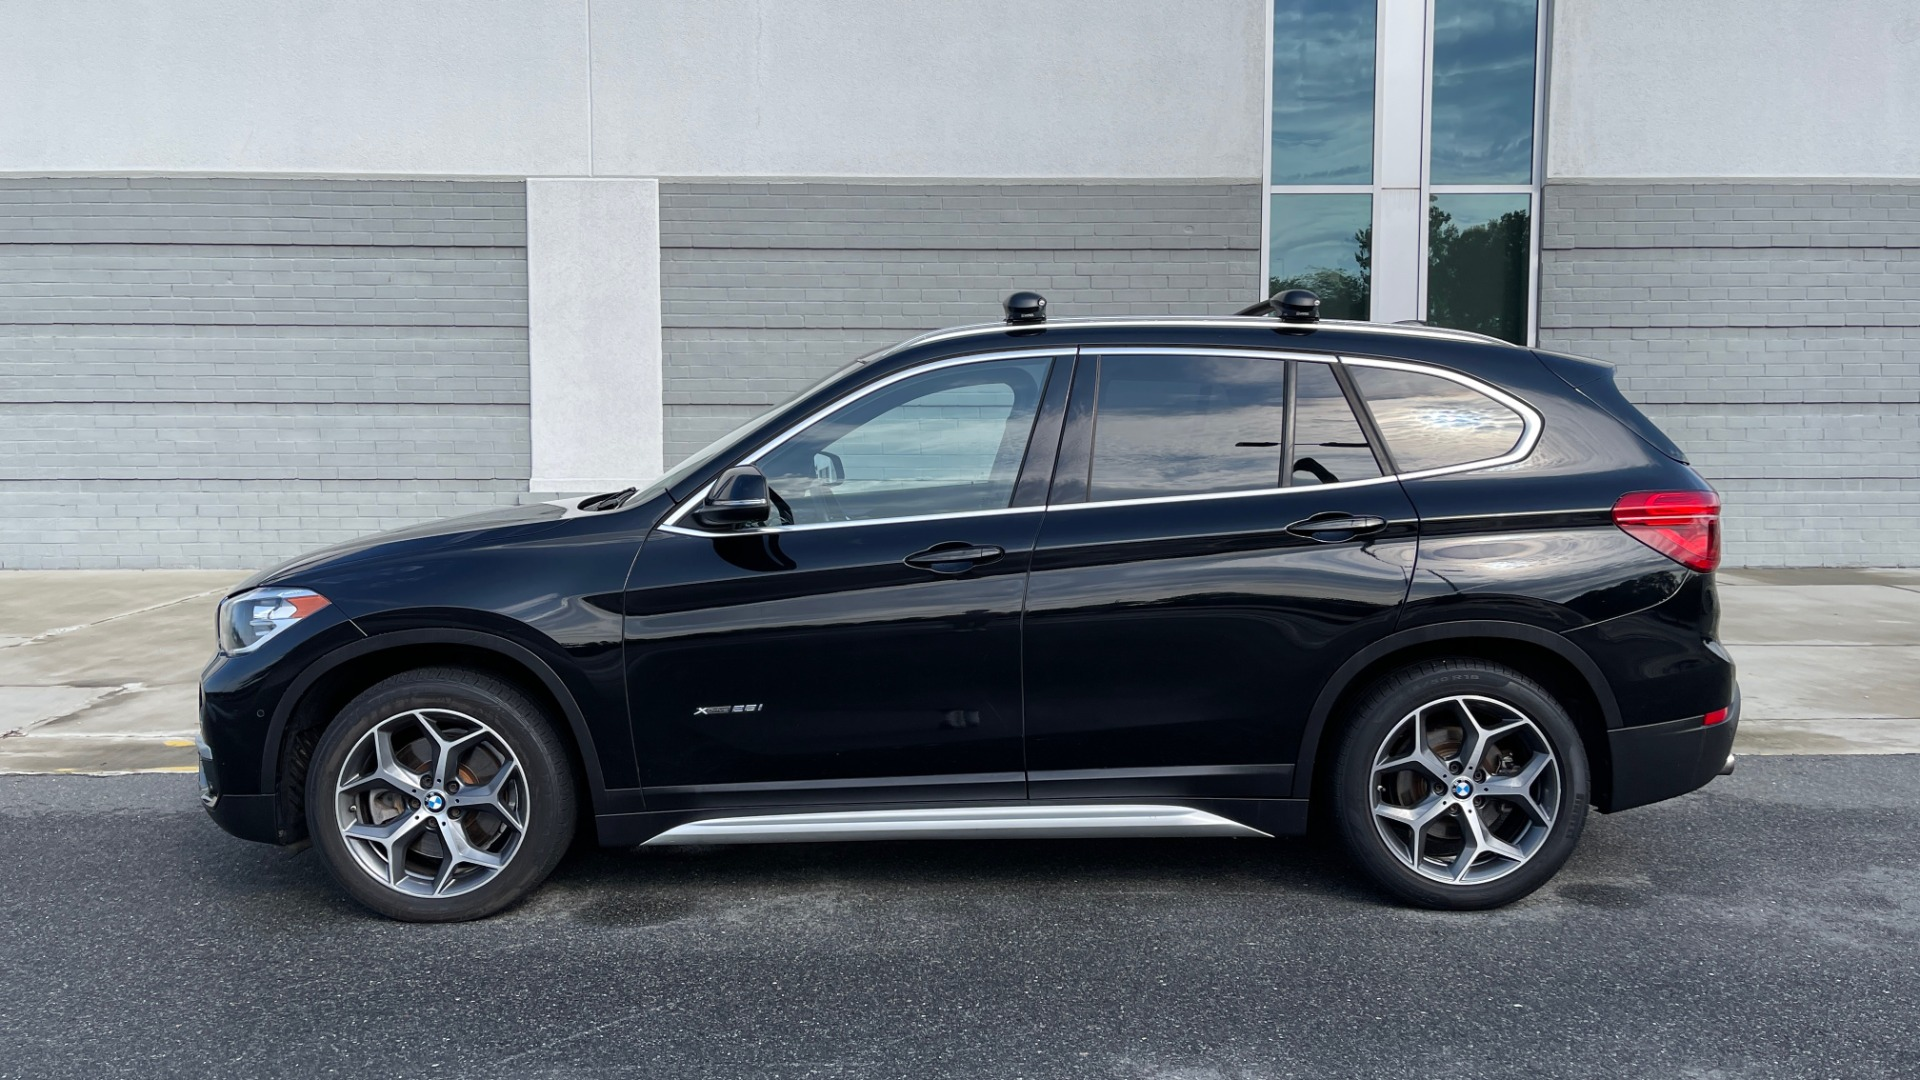 Used 2017 BMW X1 XDRIVE28I / DRVR ASST PKG / COLD WTHR / HTD FRT STS / PANO-ROOF / REARVIEW for sale $25,795 at Formula Imports in Charlotte NC 28227 4